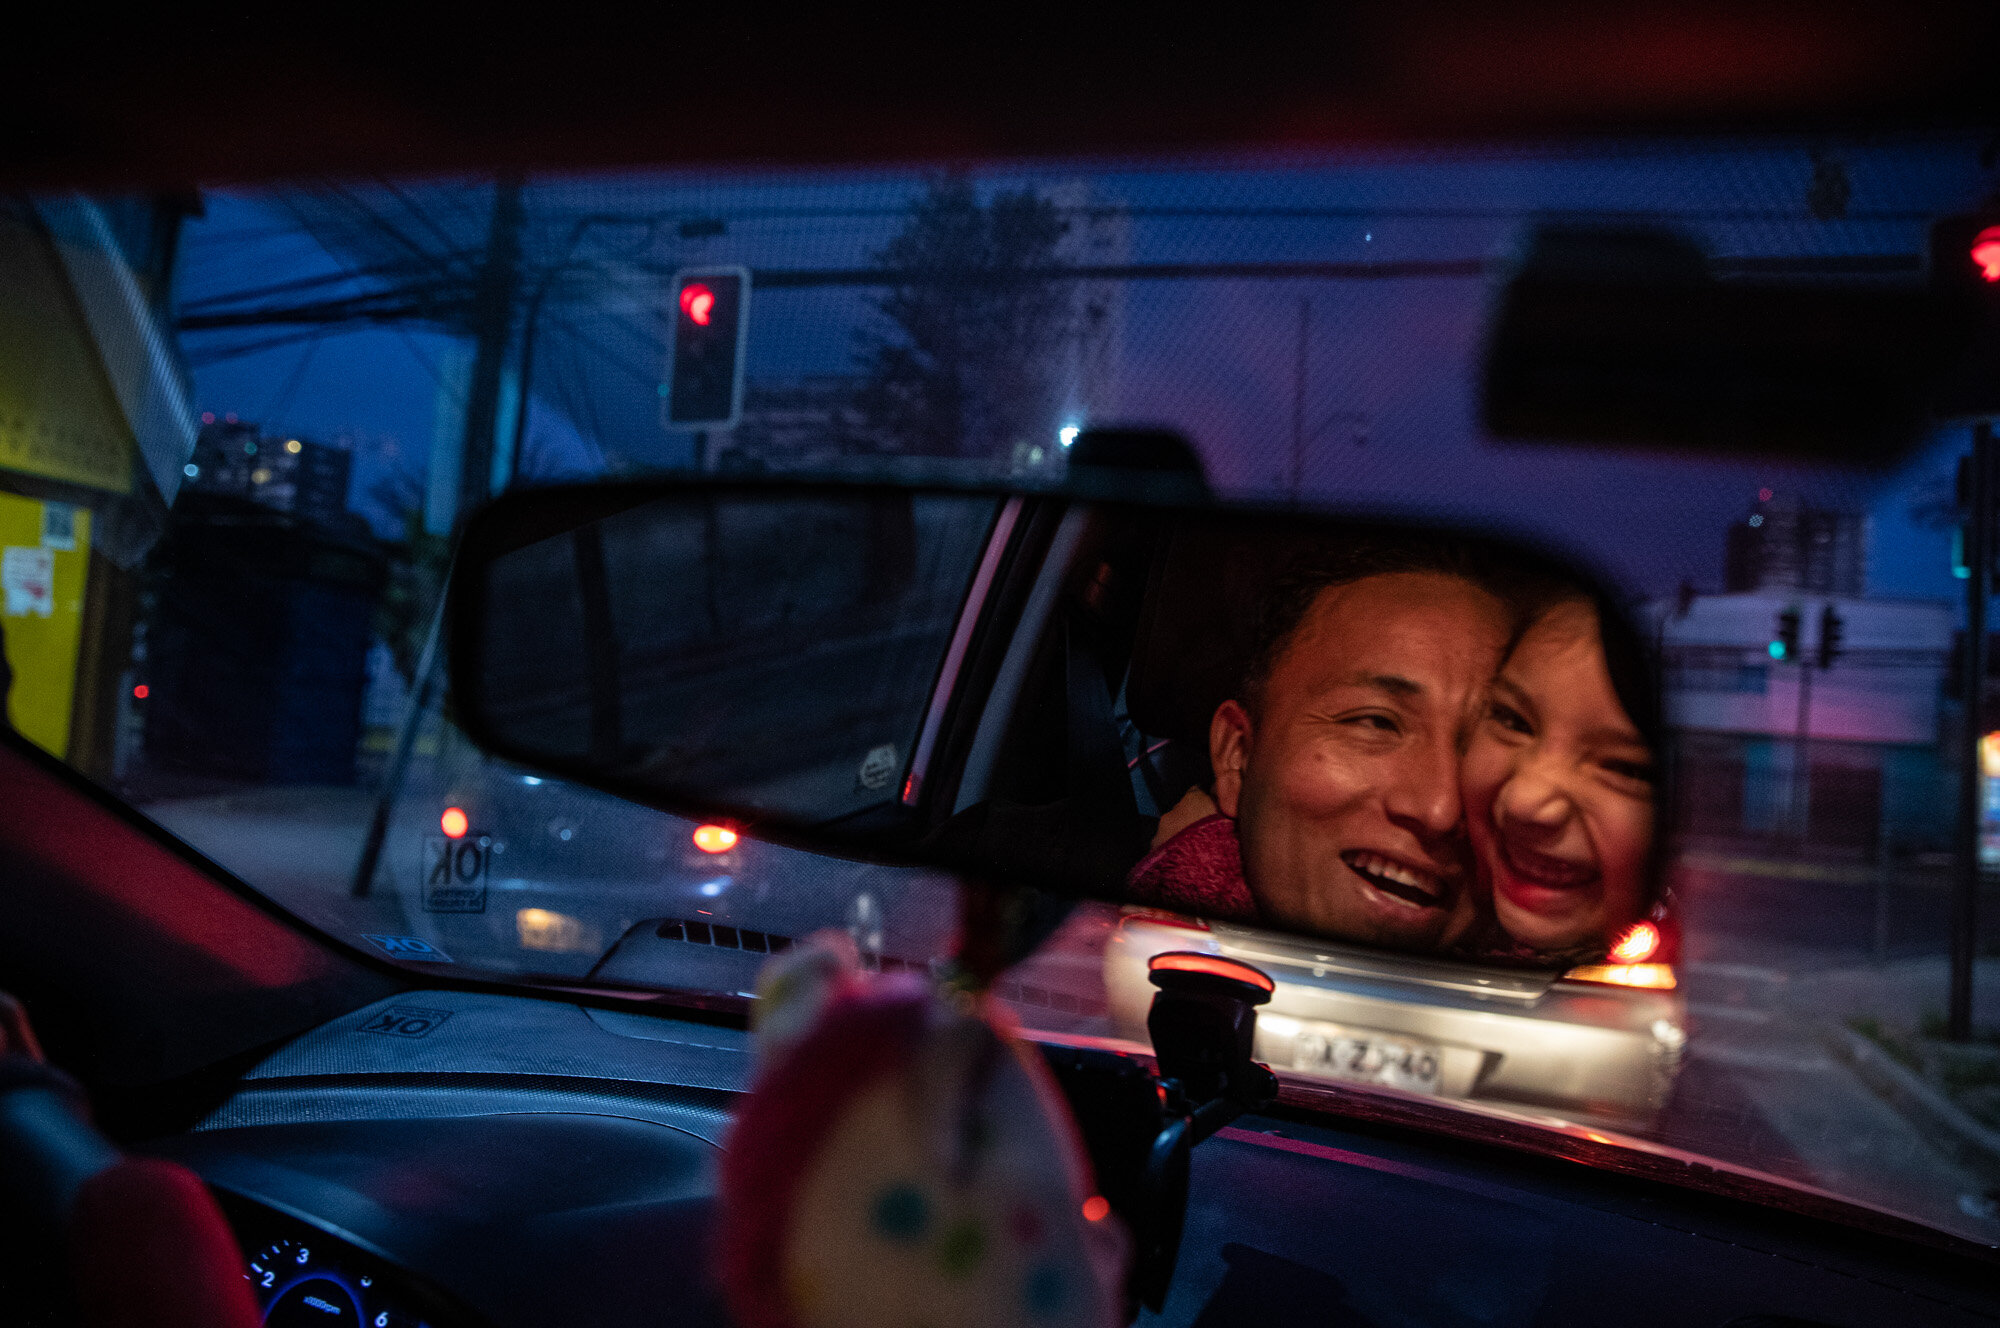 Reflected in the rearview mirror, Jose Collantes gets a hug from 5-year-old daughter Kehity while they're stopped at a red light, as Jose drives her home from a playdate in Santiago, Chile, on Sept. 6, 2020, three months after they lost his wife, her mother, to COVID-19. Their case highlights how COVID-19 deaths the world over are often the beginning of a new personal journey for those affected. (AP Photo/Esteban Felix)